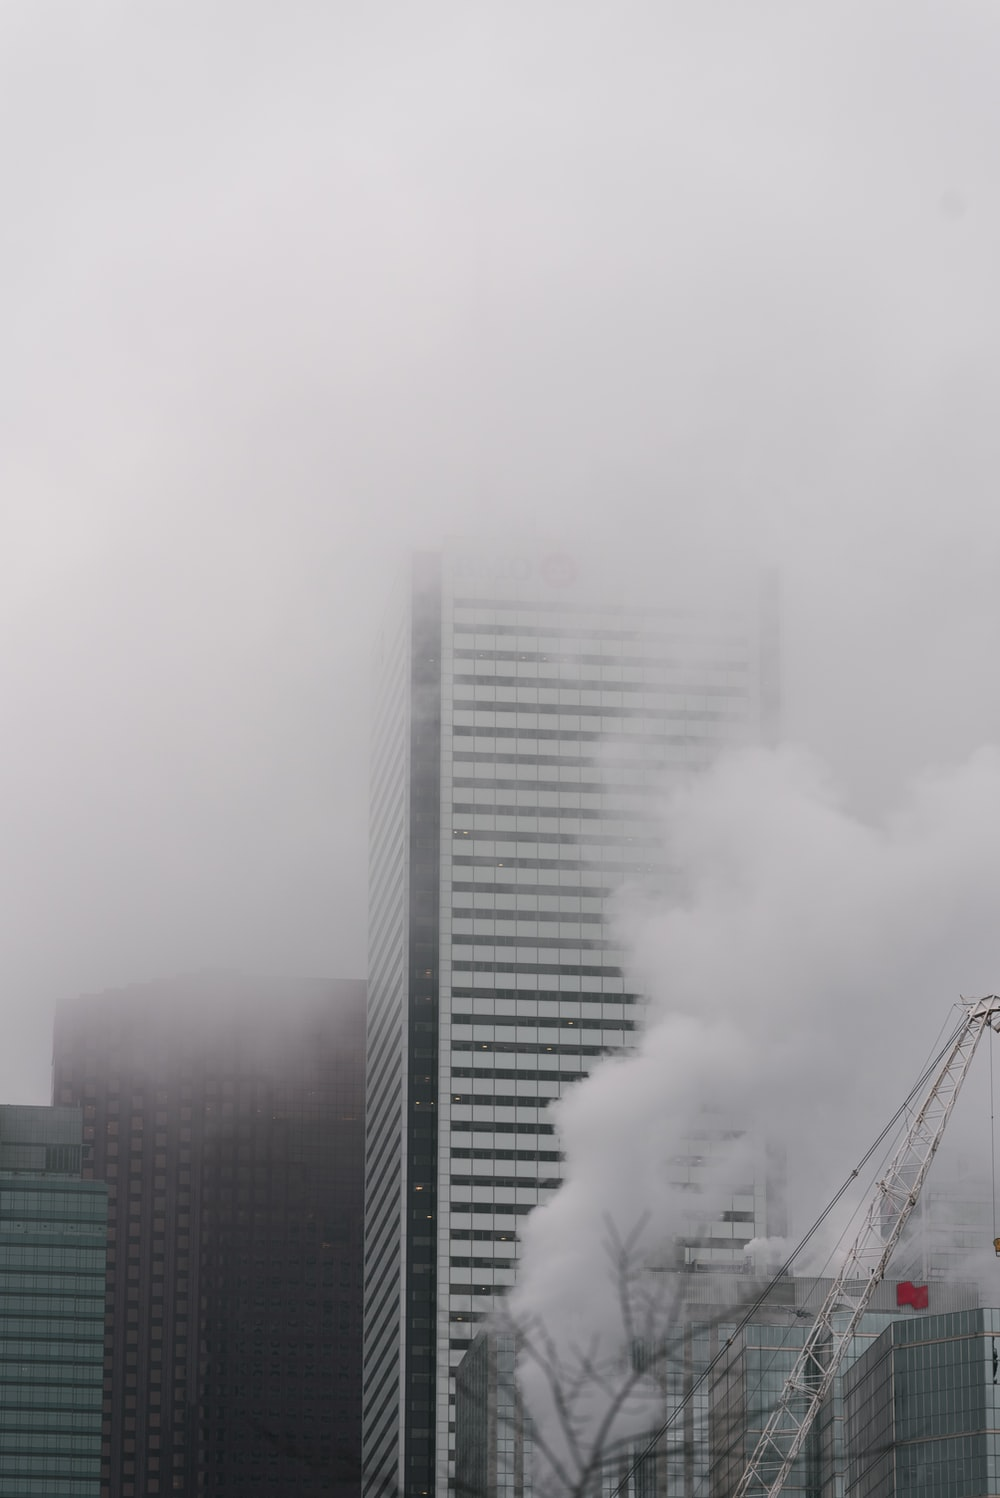 white smoke coming out from a building